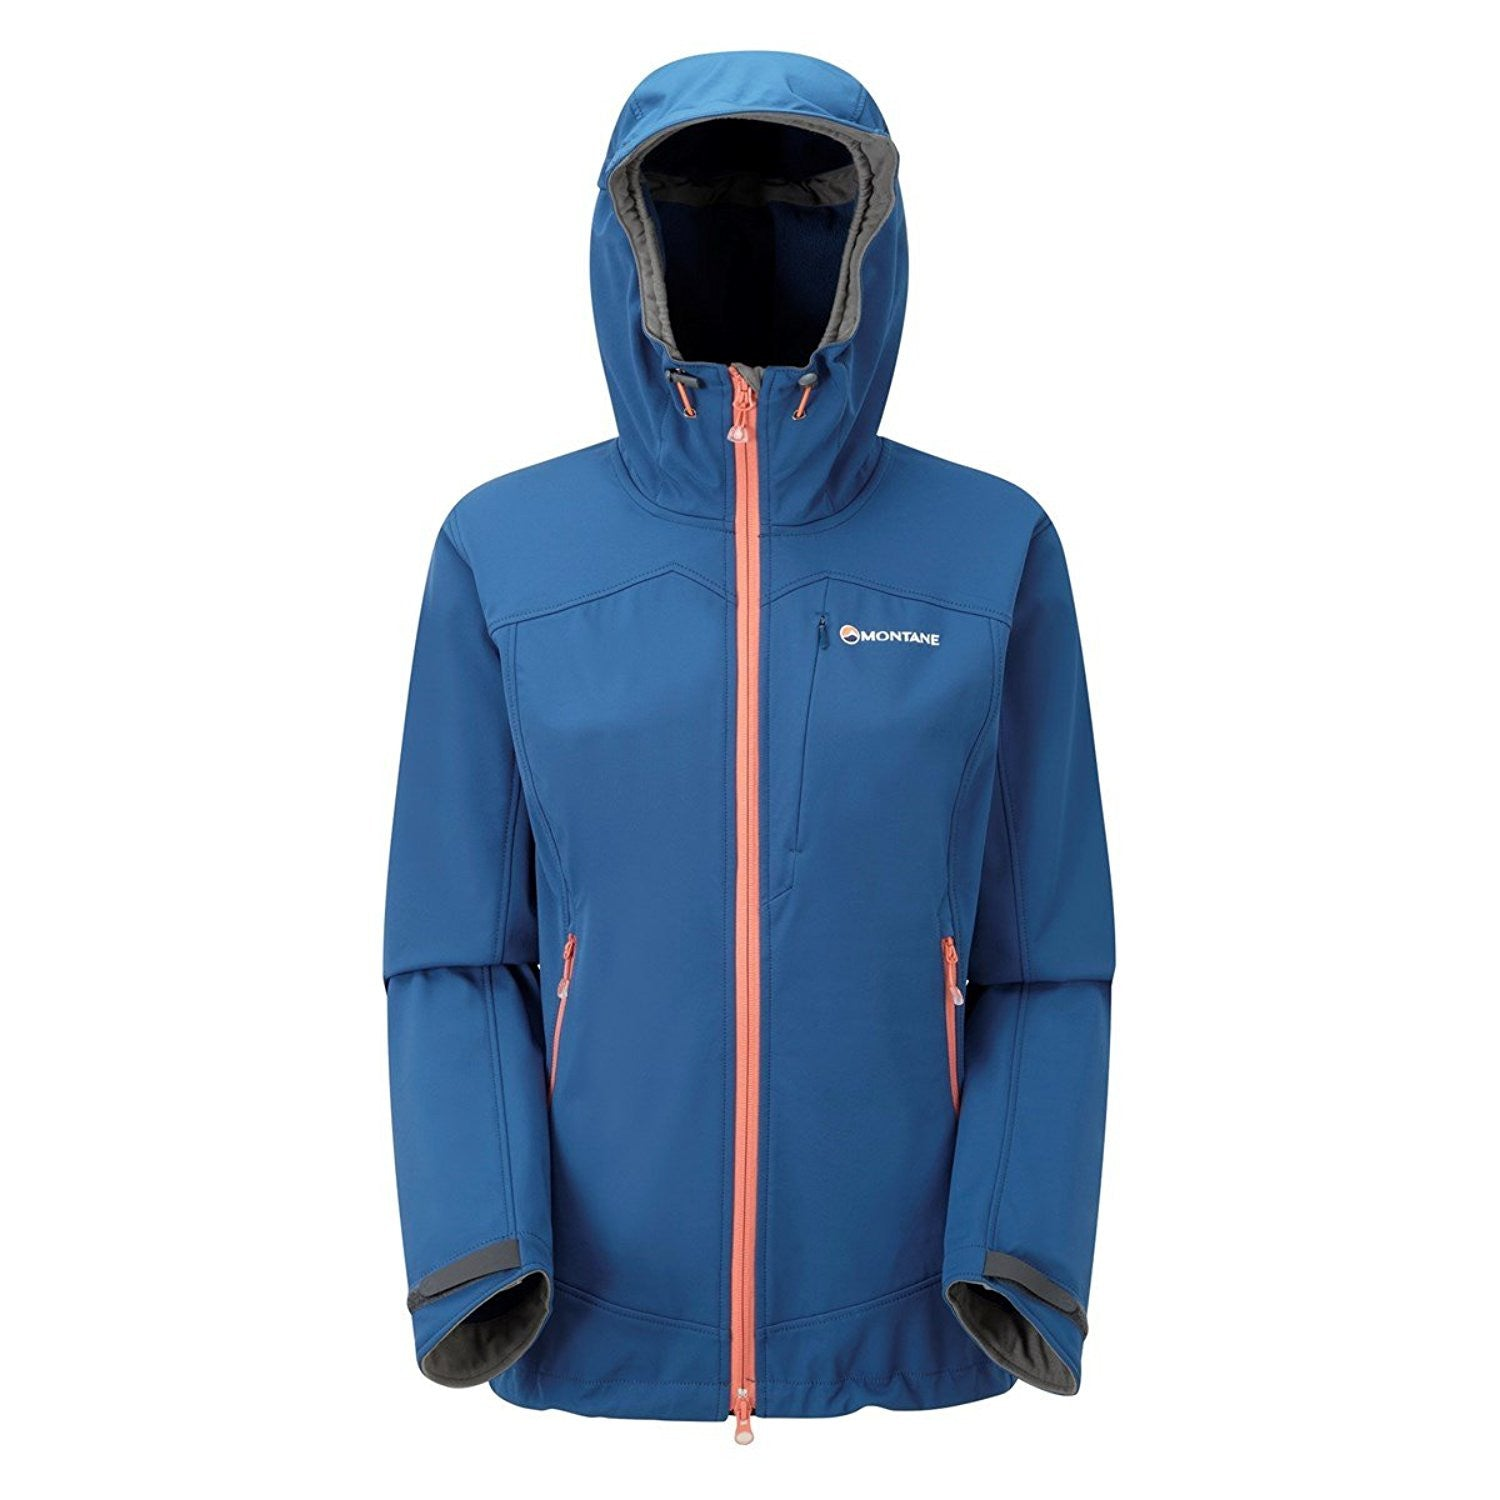 Montane-Women's Sabretooth Jacket-Women's Insulation & Down-Moroccan Blue-XS-Gearaholic.com.sg